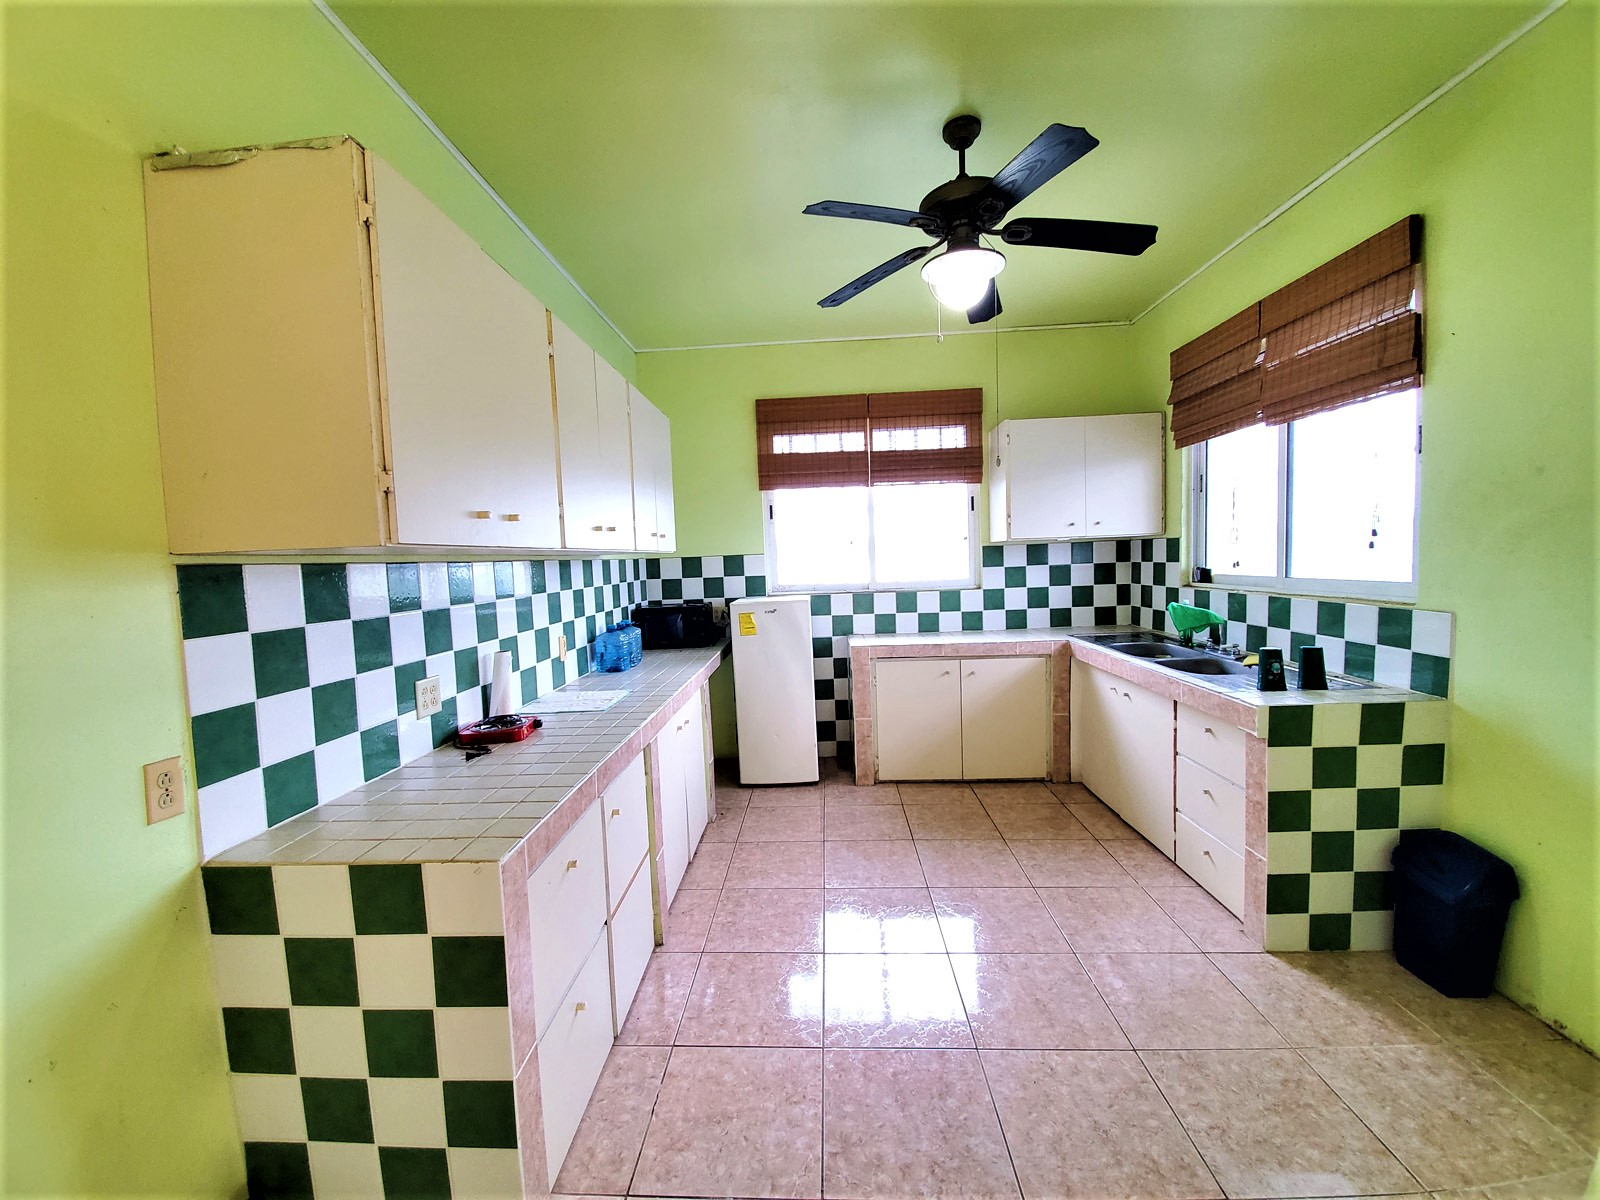 Large and Spacious Four Bedroom House for Rent in Belmopan